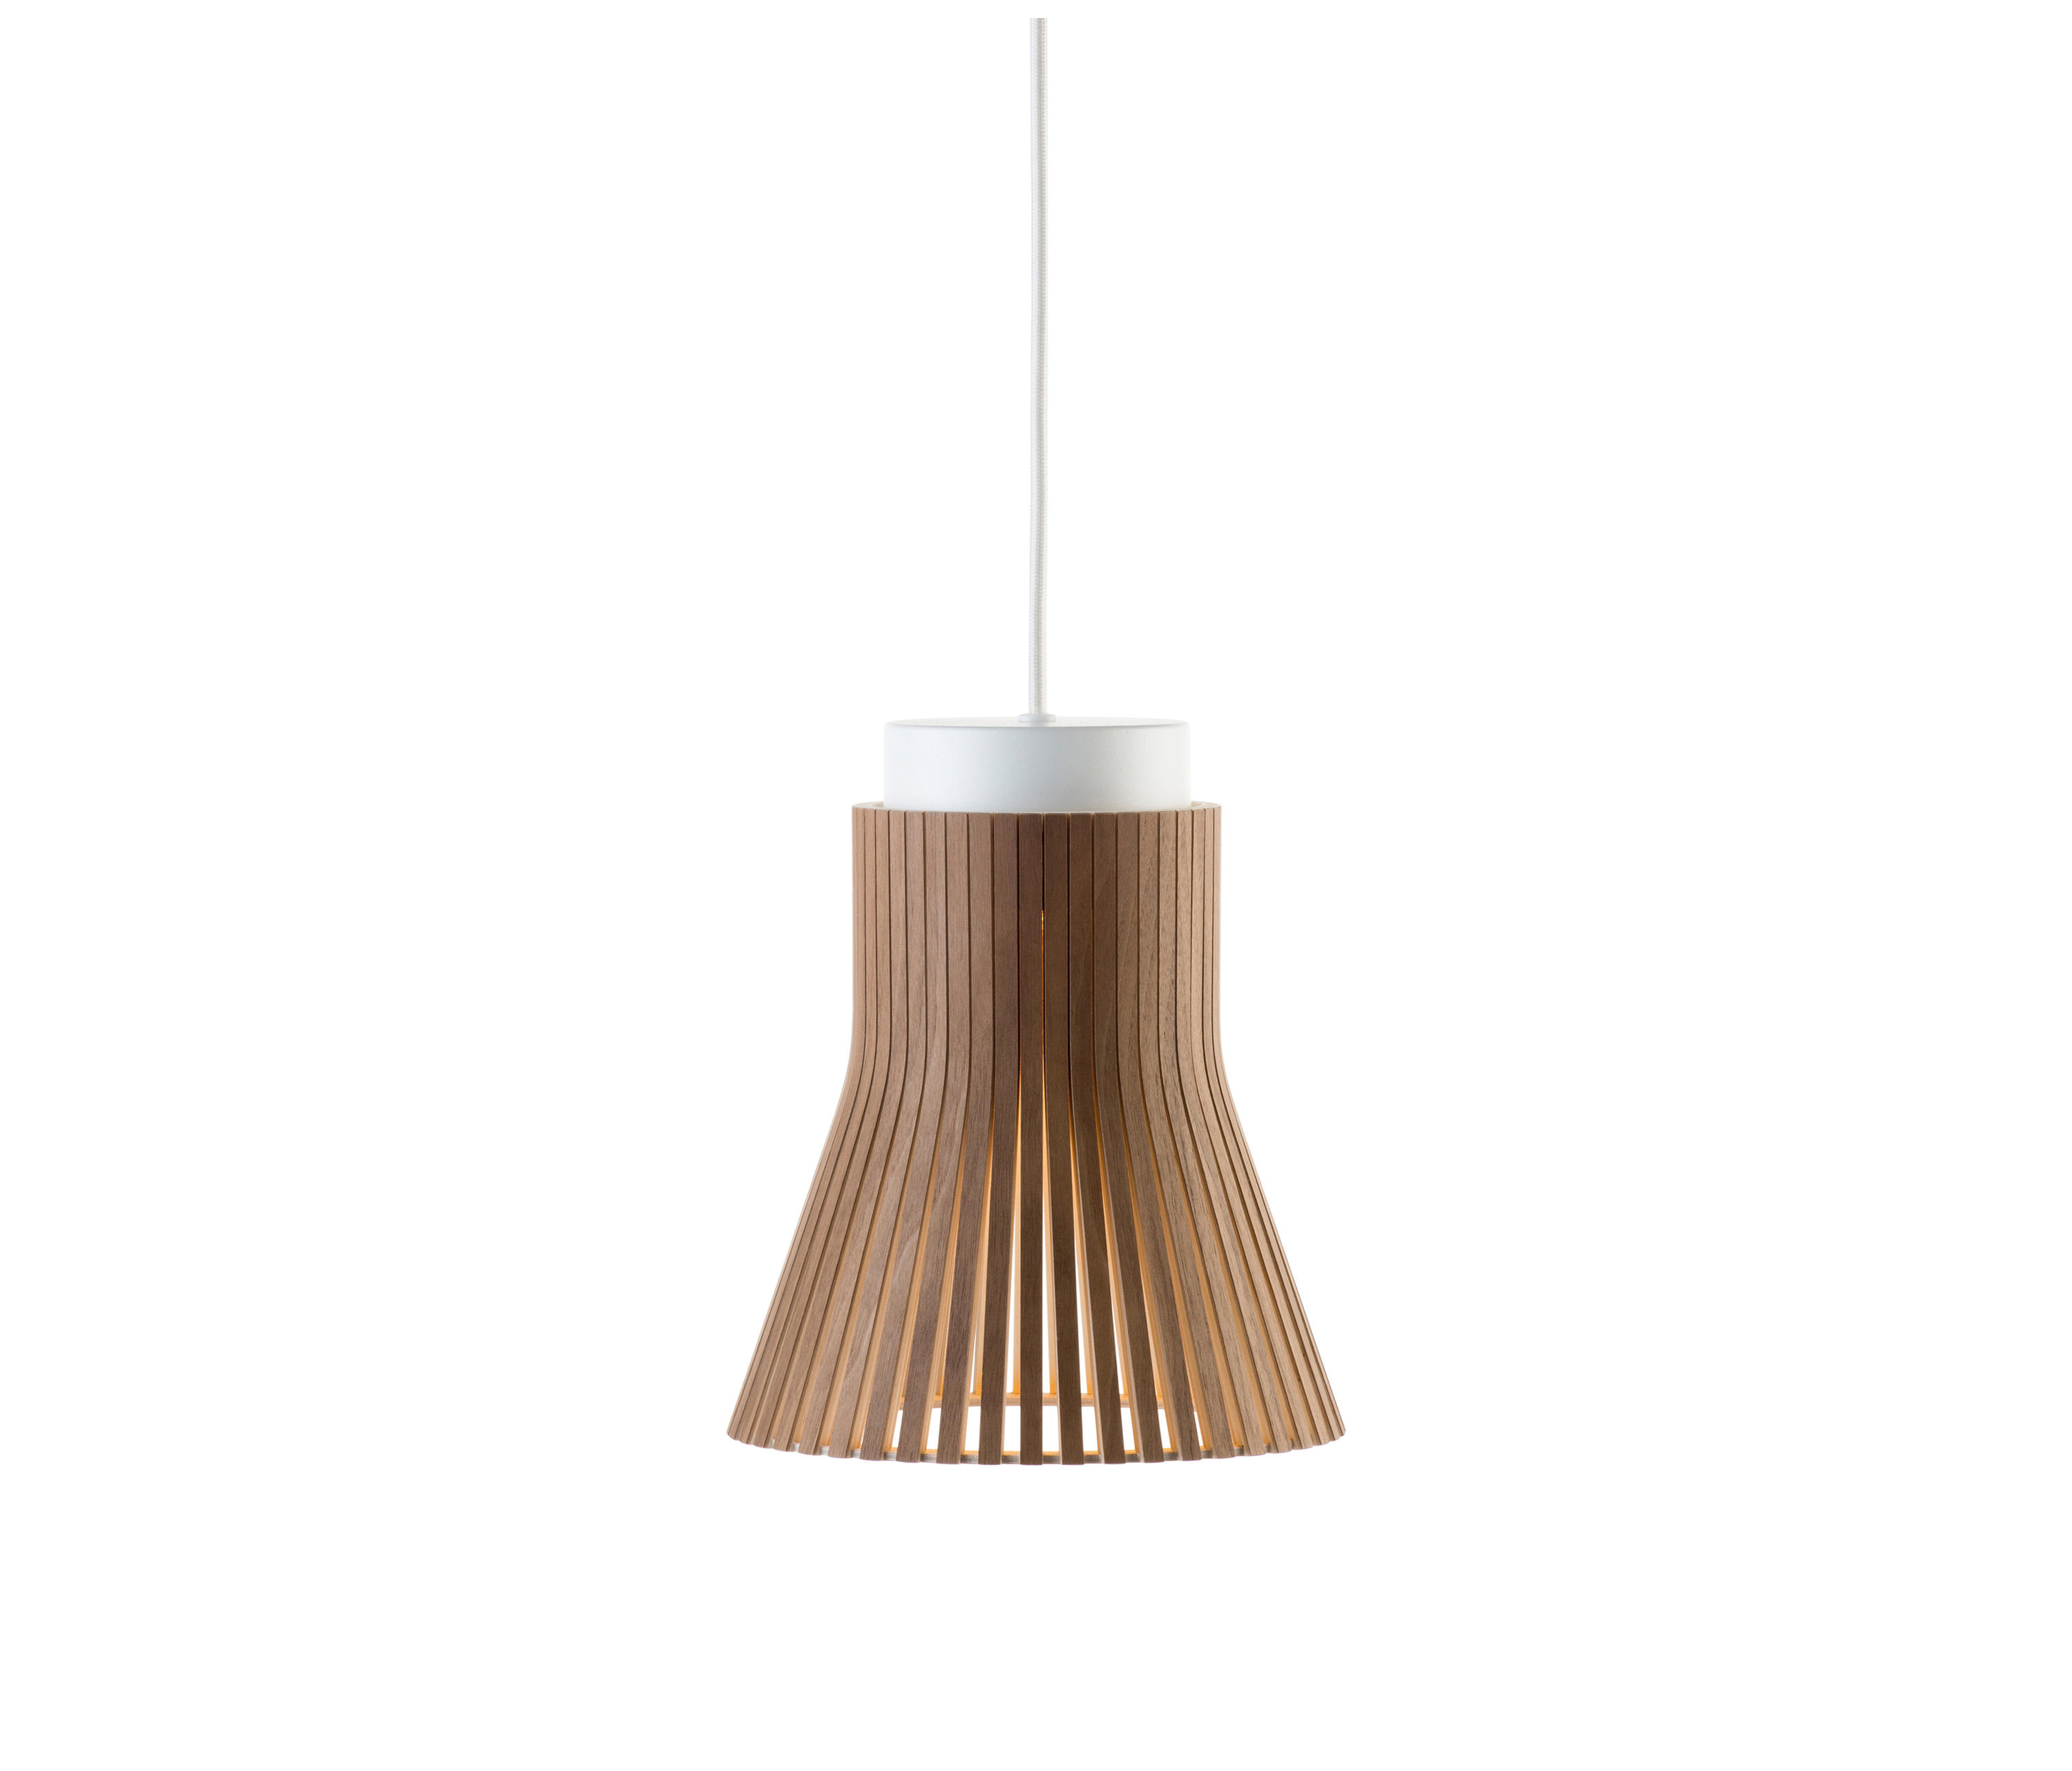 petite 4600 pendant lamp general lighting from secto design architonic. Black Bedroom Furniture Sets. Home Design Ideas